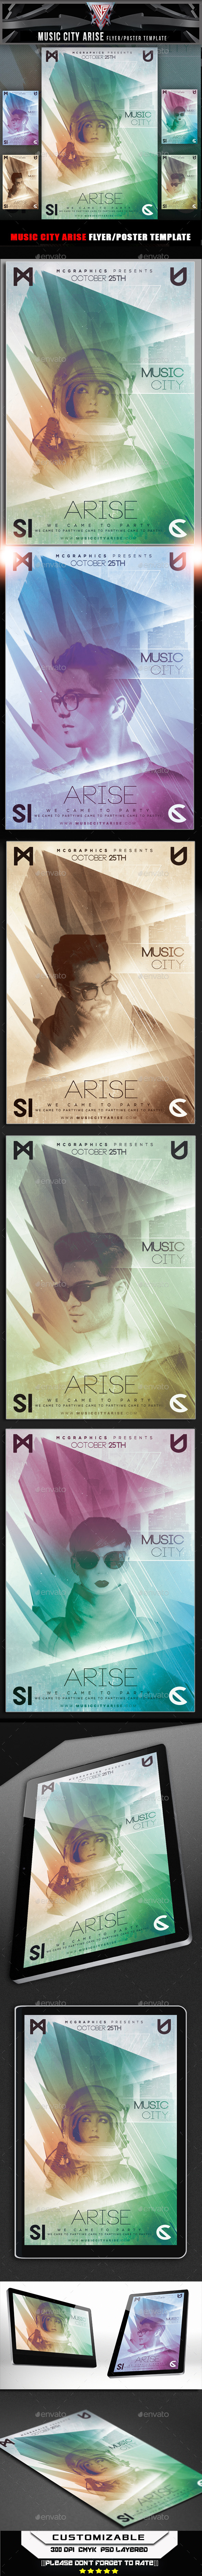 Music City Arise Flyer Template - Flyers Print Templates